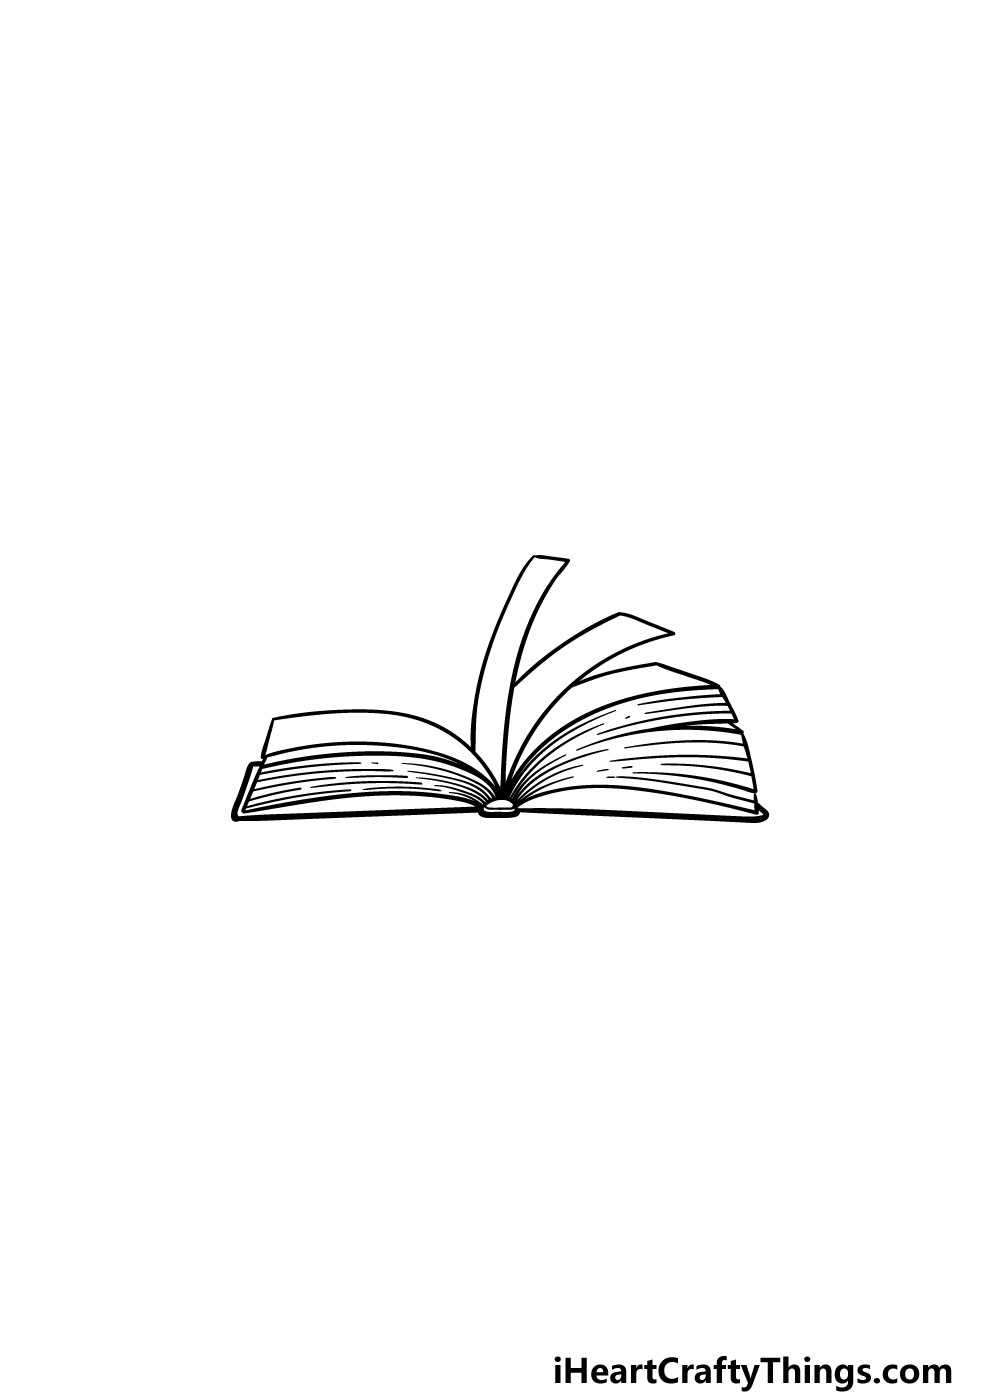 drawing an open book step 5